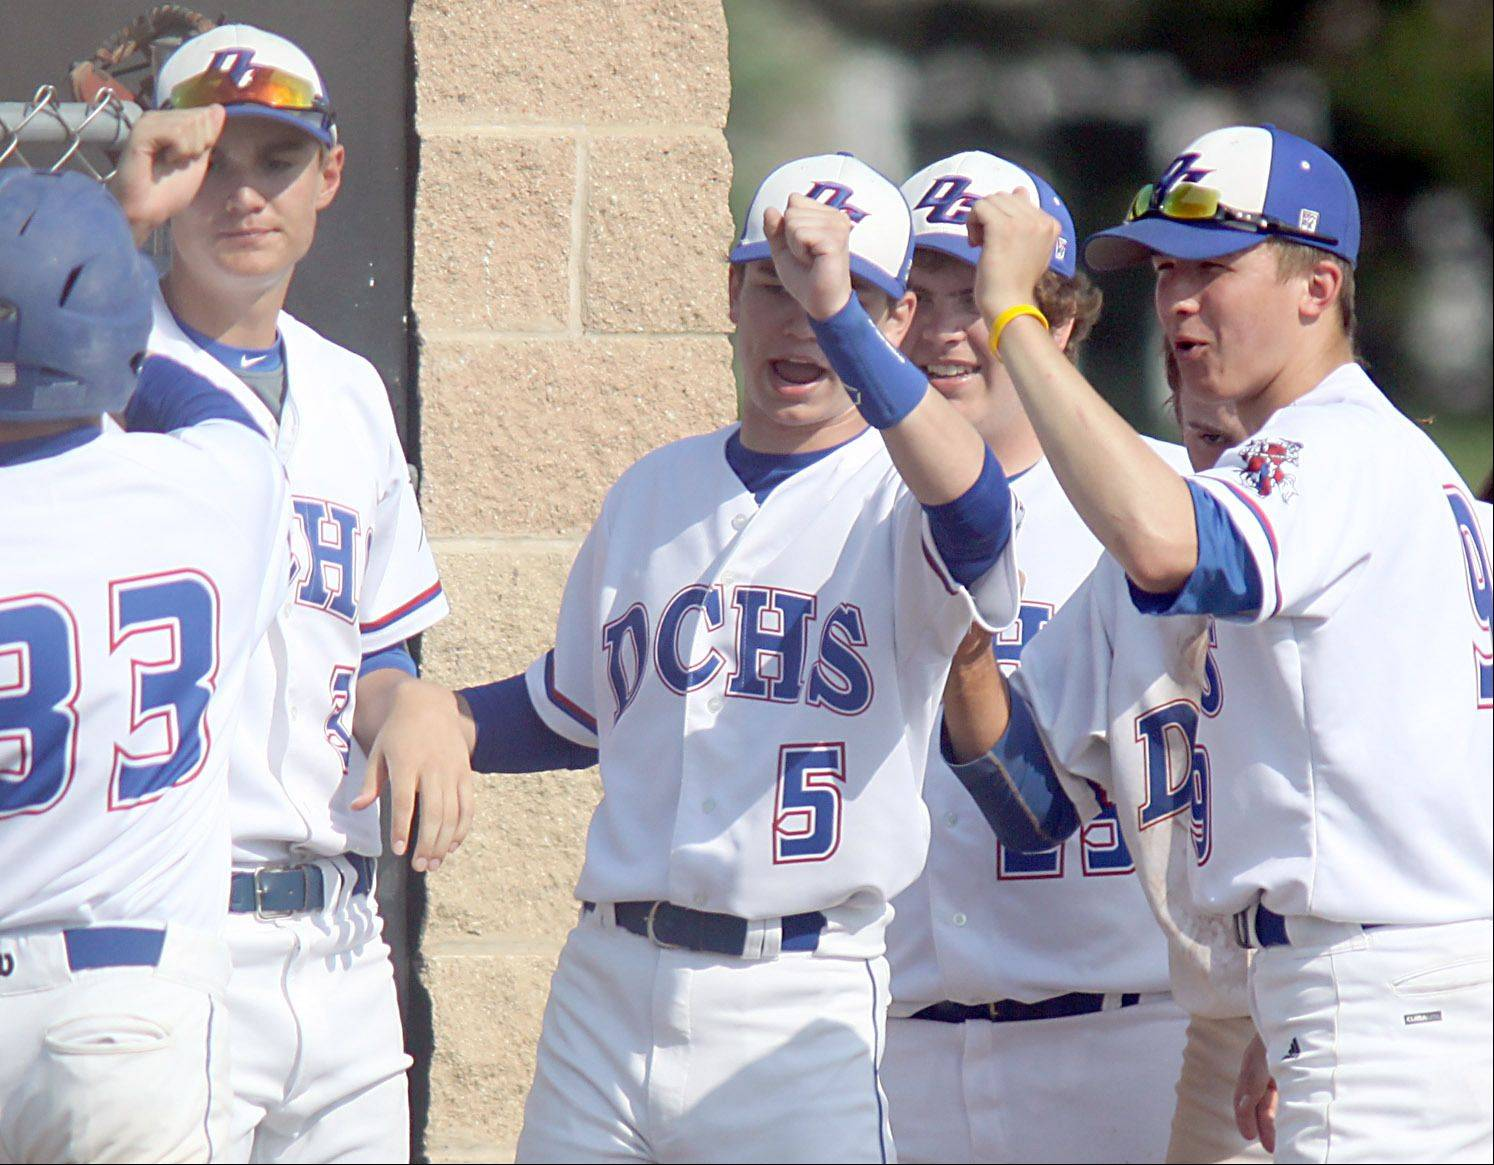 Dundee-Crown players greet Chase Bloch, far left, after Boch scored in the first inning during a sectional semifinal game at Huntley against Prairie Ridge on Wednesday night. The Chargers won 15-4.